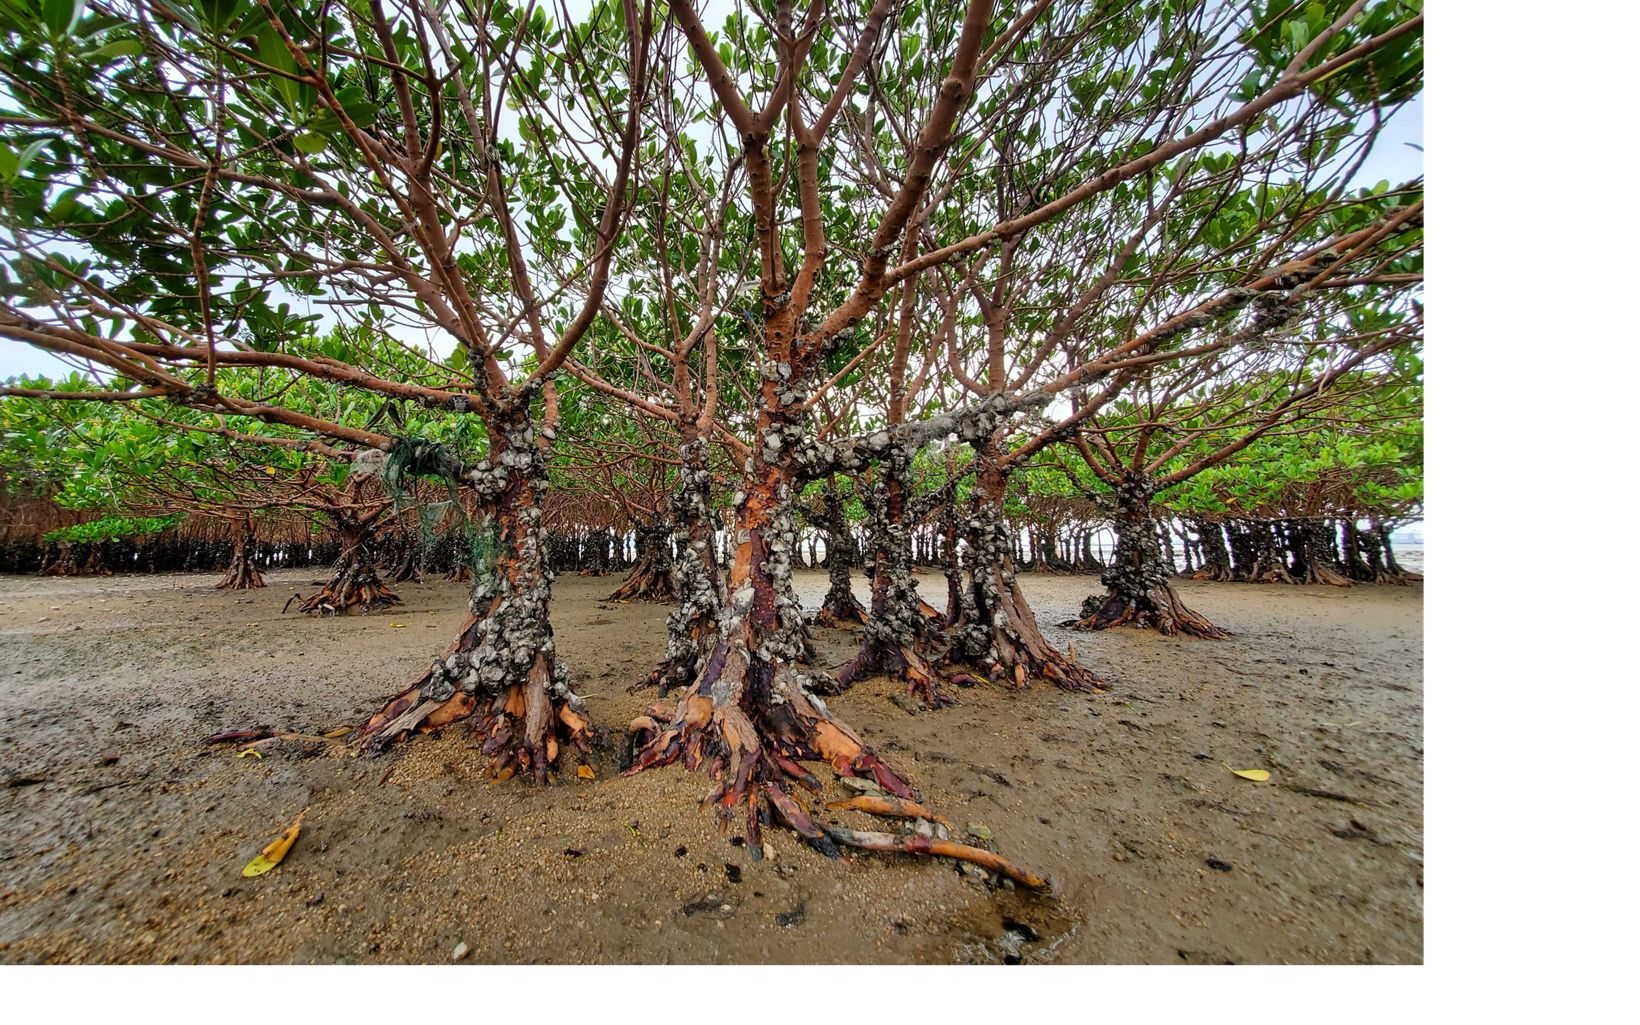 A group of mangroves at low tide with their roots exposed.